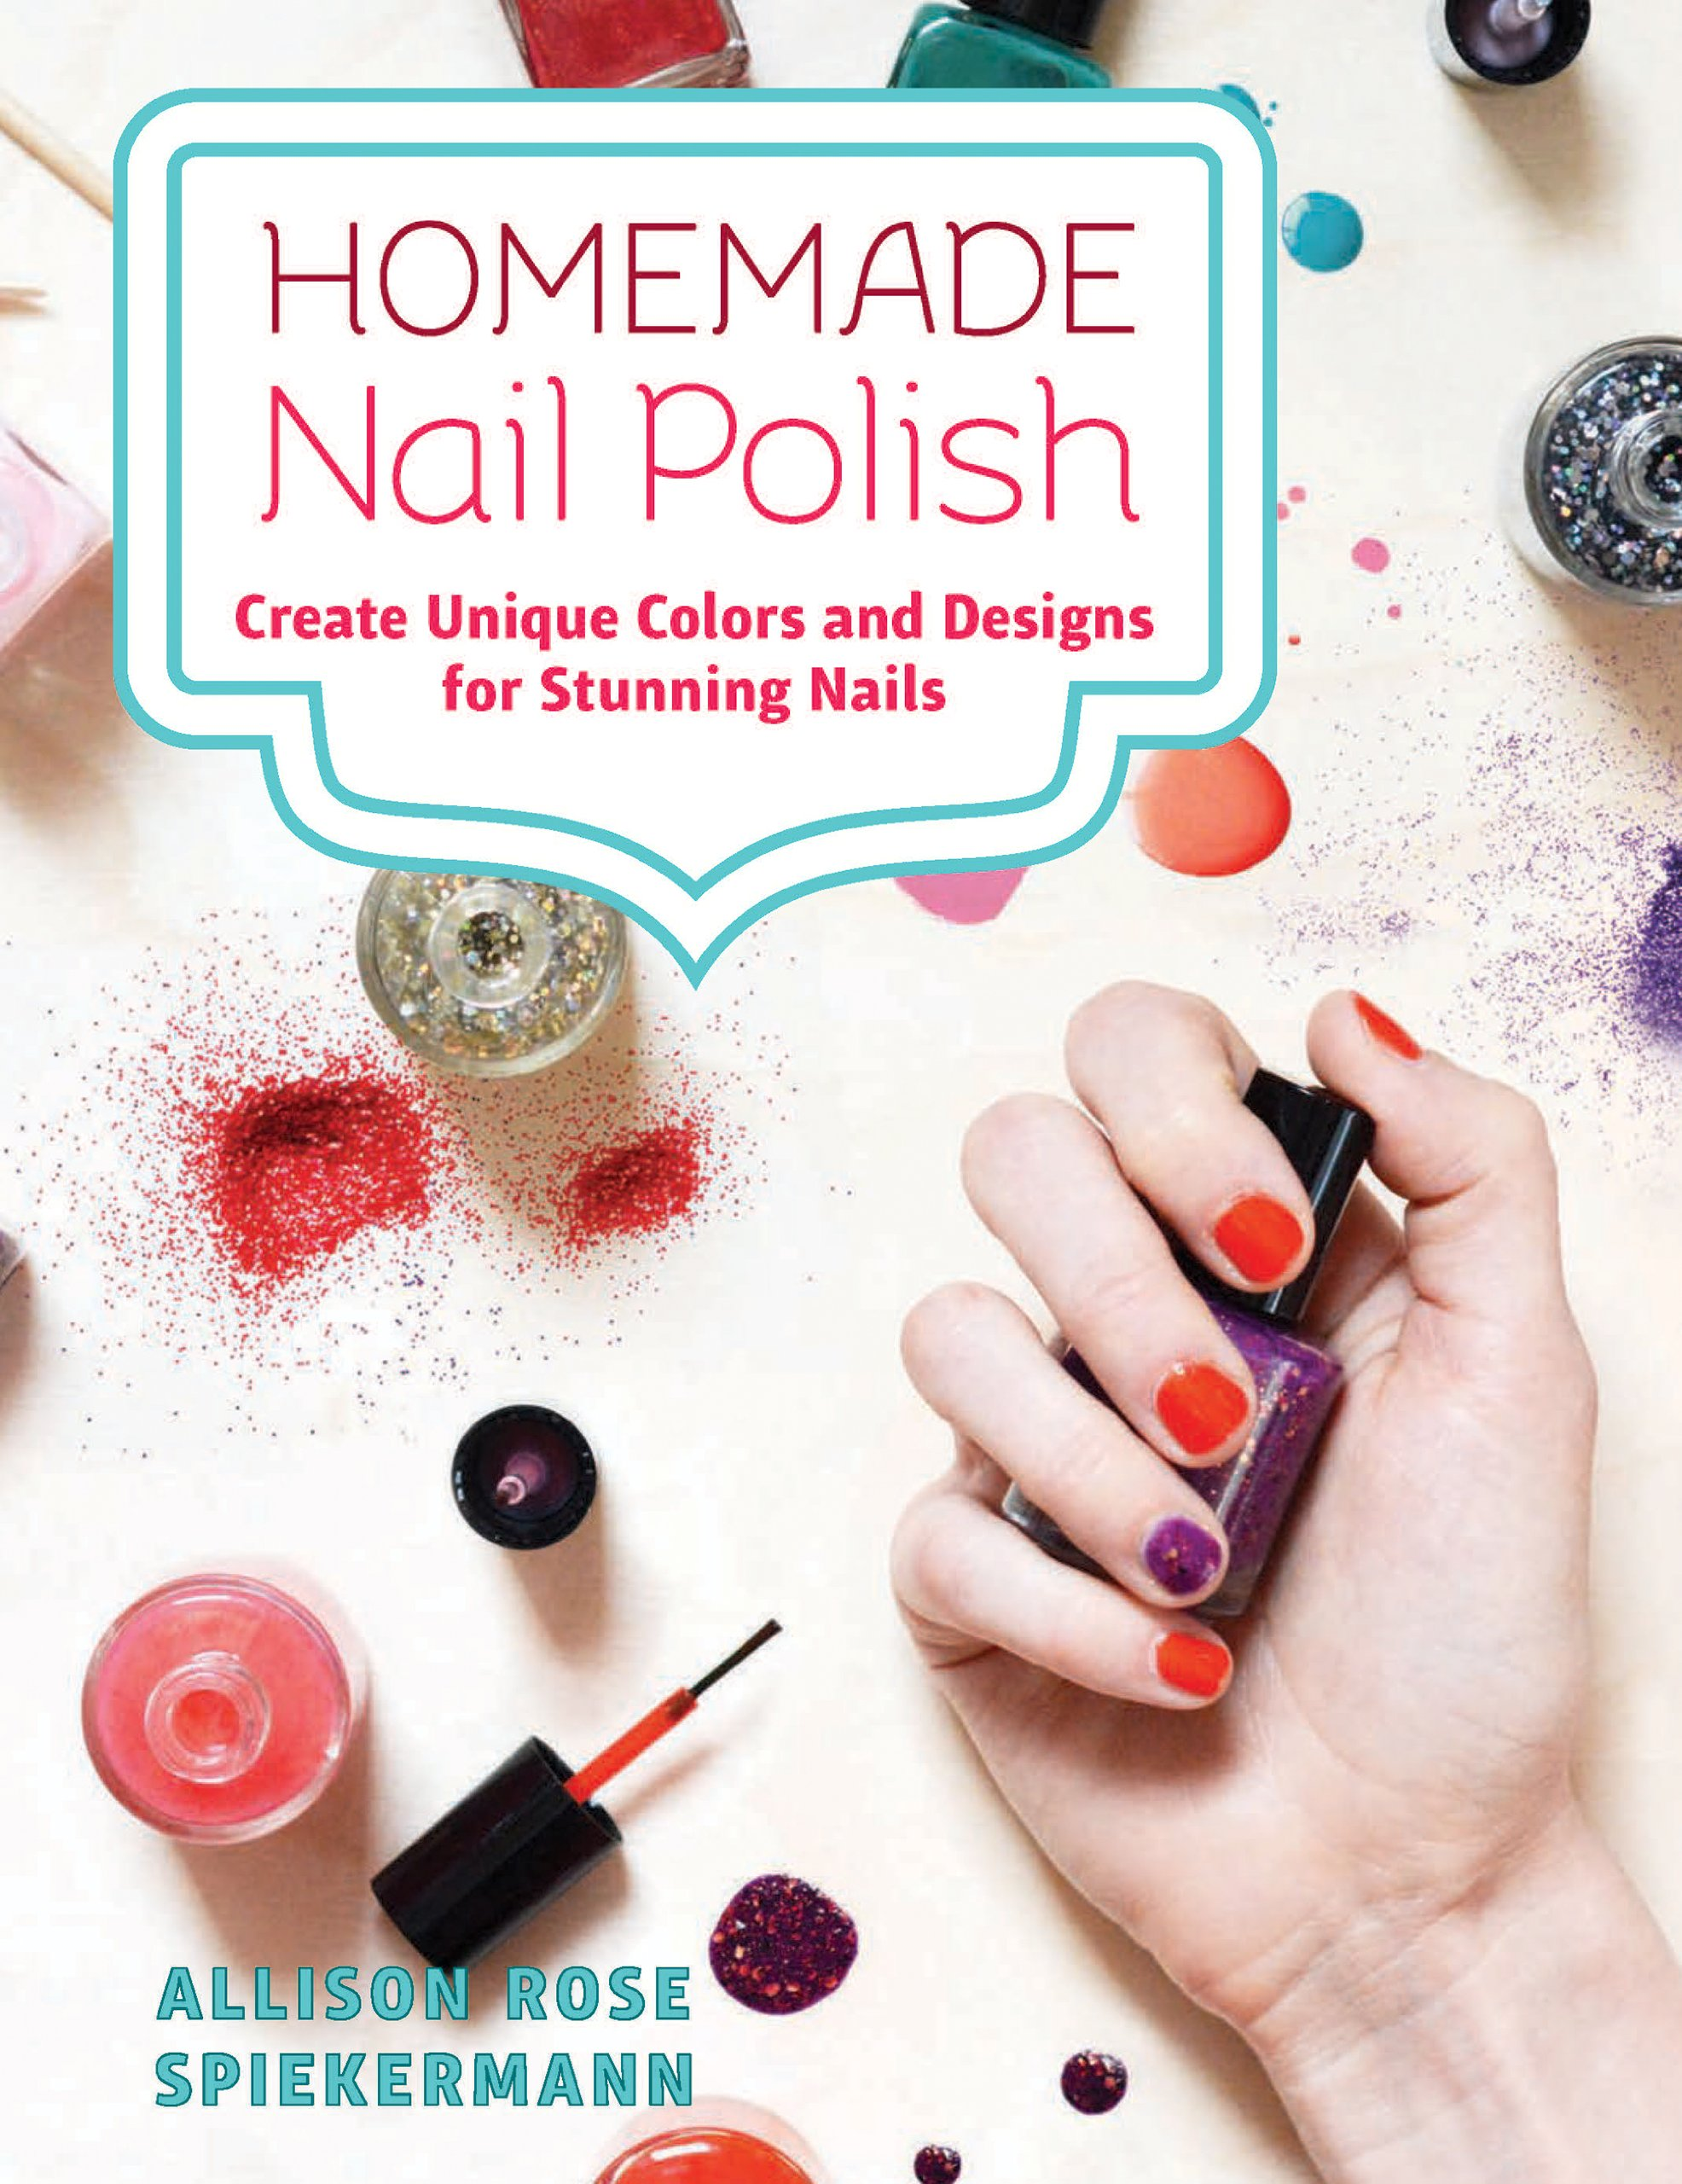 Homemade Nail Polish: Create Unique Colors and Designs For Eye-Catching Nails pdf